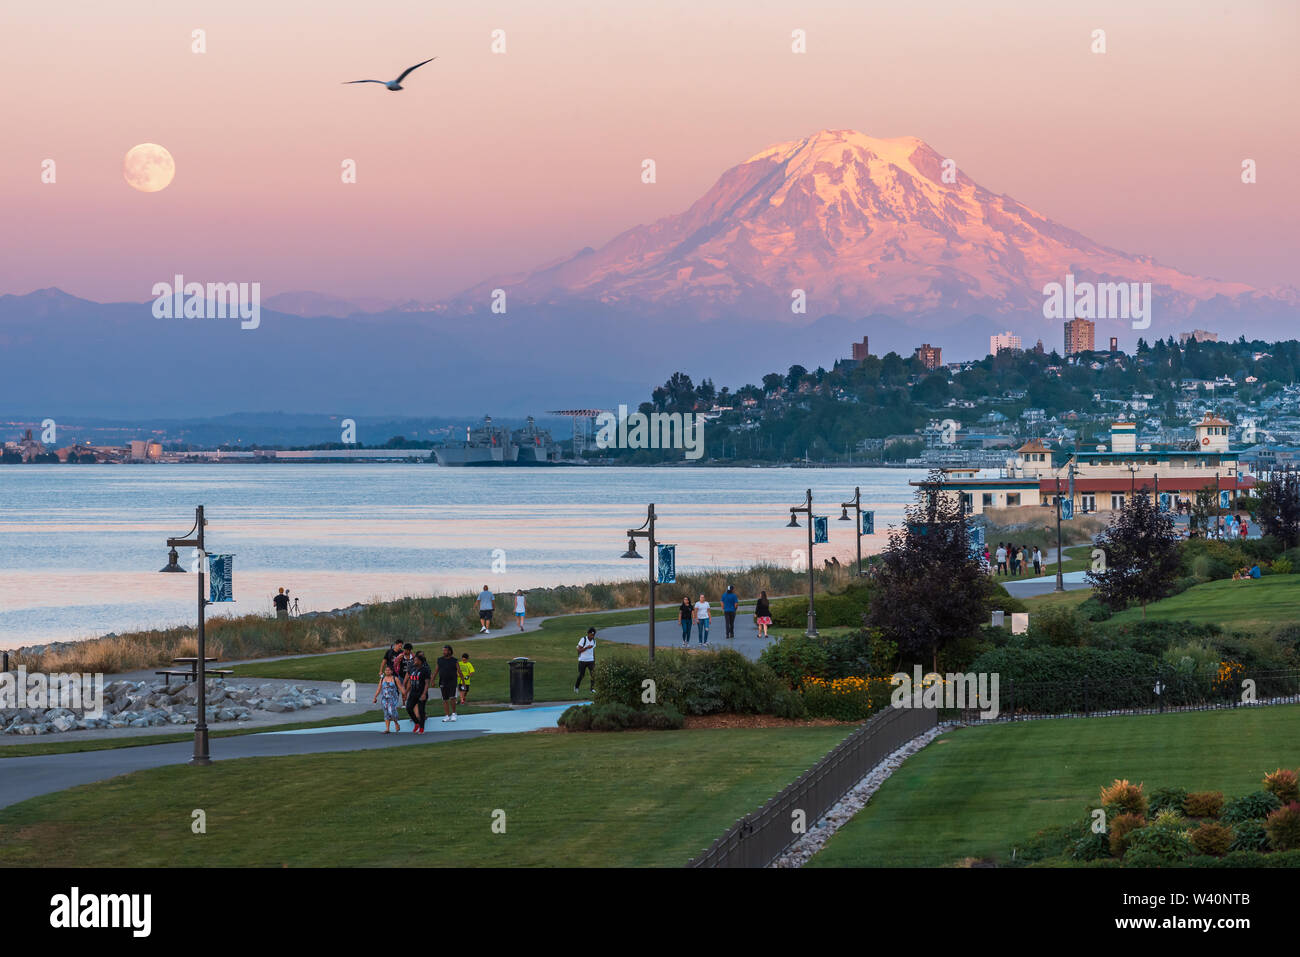 Mt Rainier Hovers Over Downtown Tacoma and Commencement Bay as Seen from Point Ruston with people walking and a Seagull - Stock Image